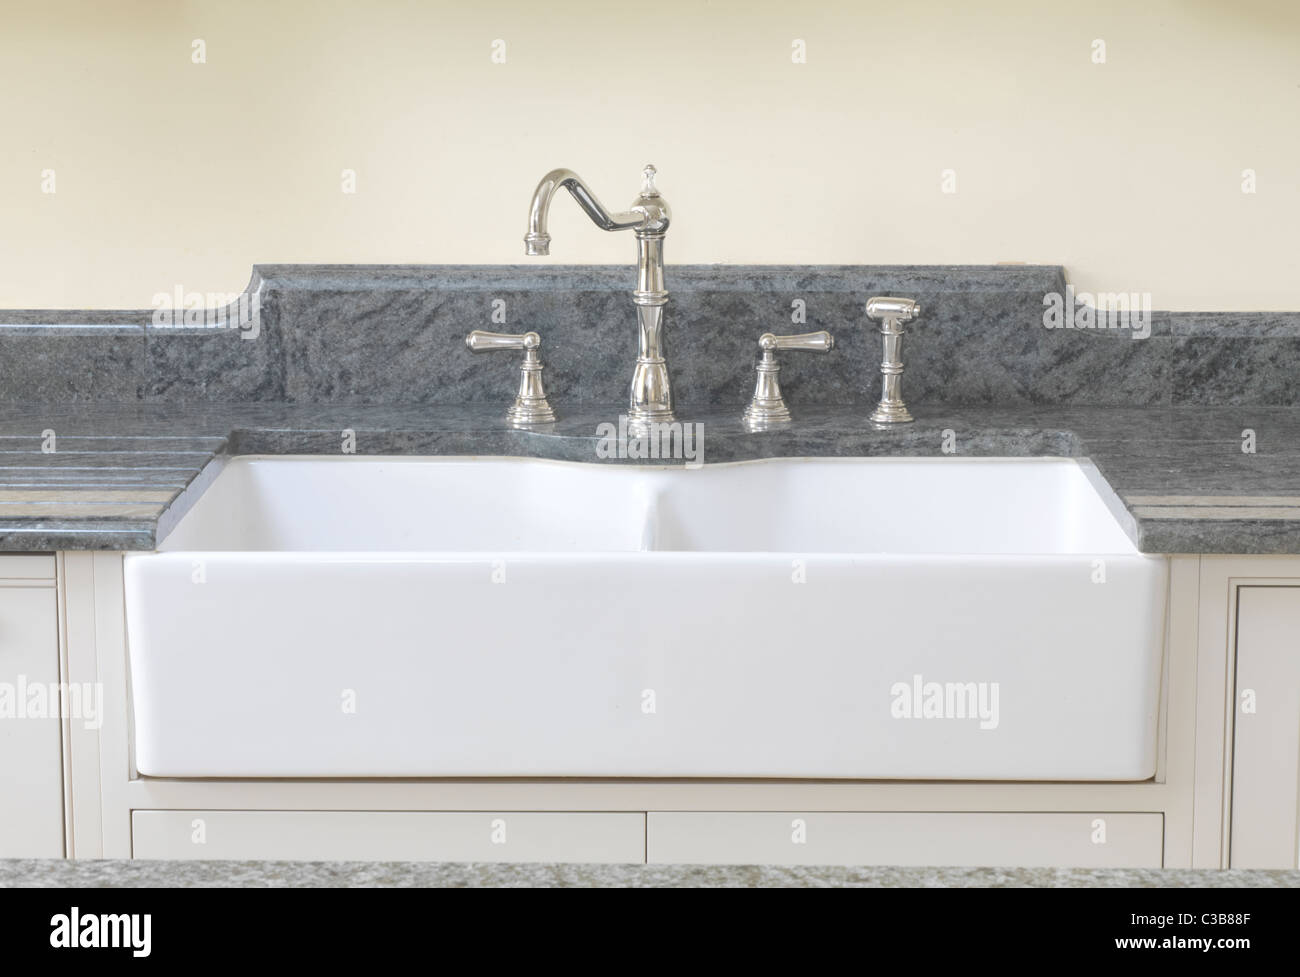 Kitchen Sink High Resolution Stock Photography And Images Alamy